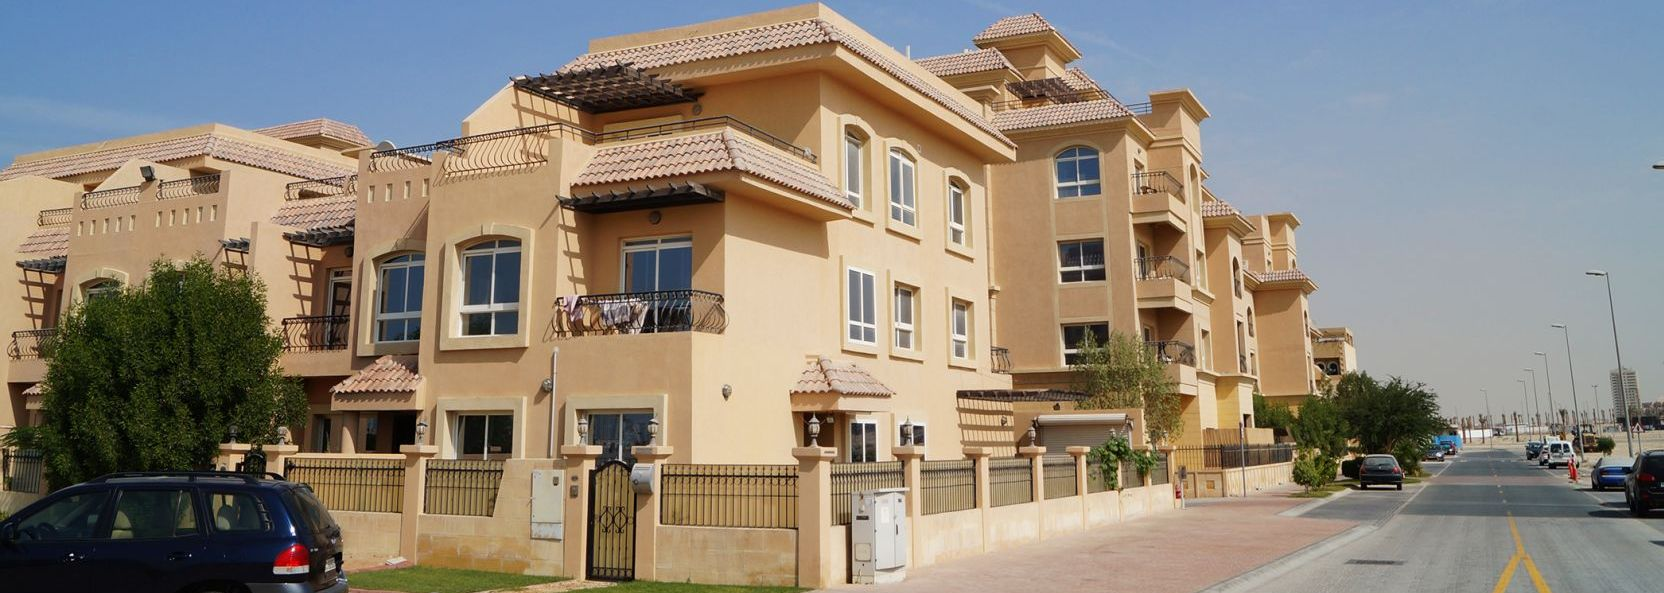 Dubai - Jumeirah Village Circle.jpg